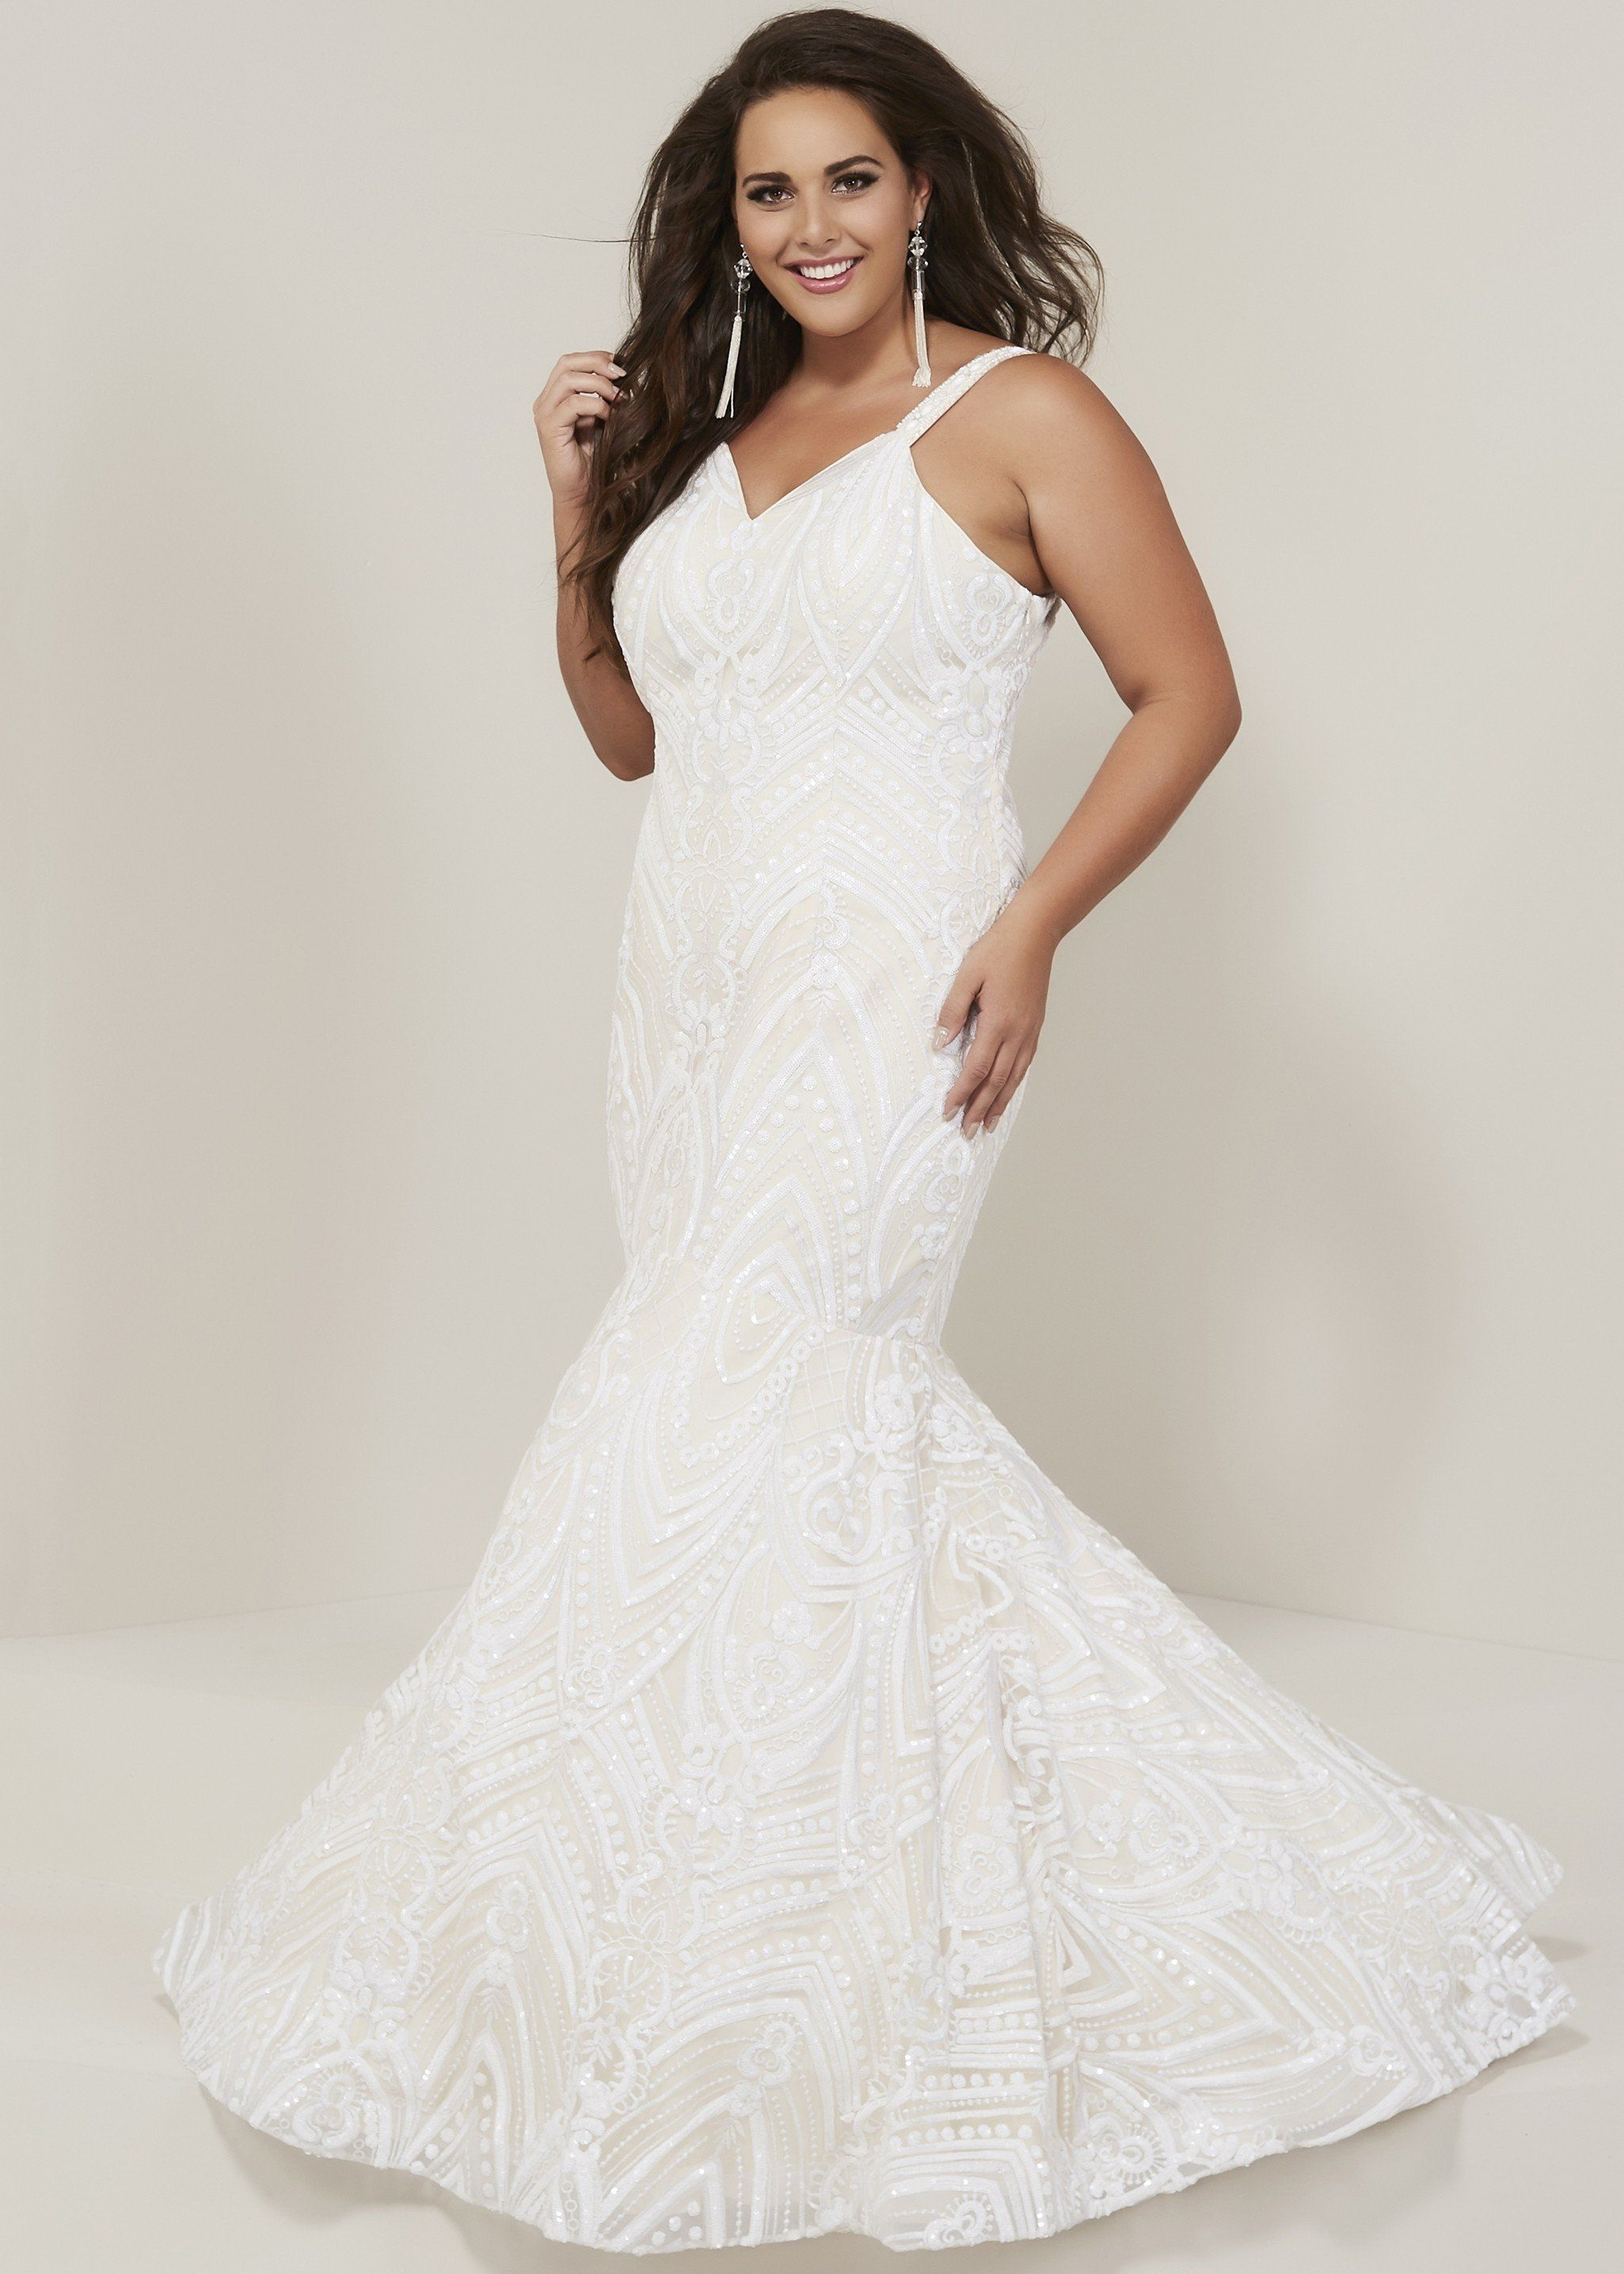 Tiffany Designs 16376 Sparkly Embroidered Mermaid Gown